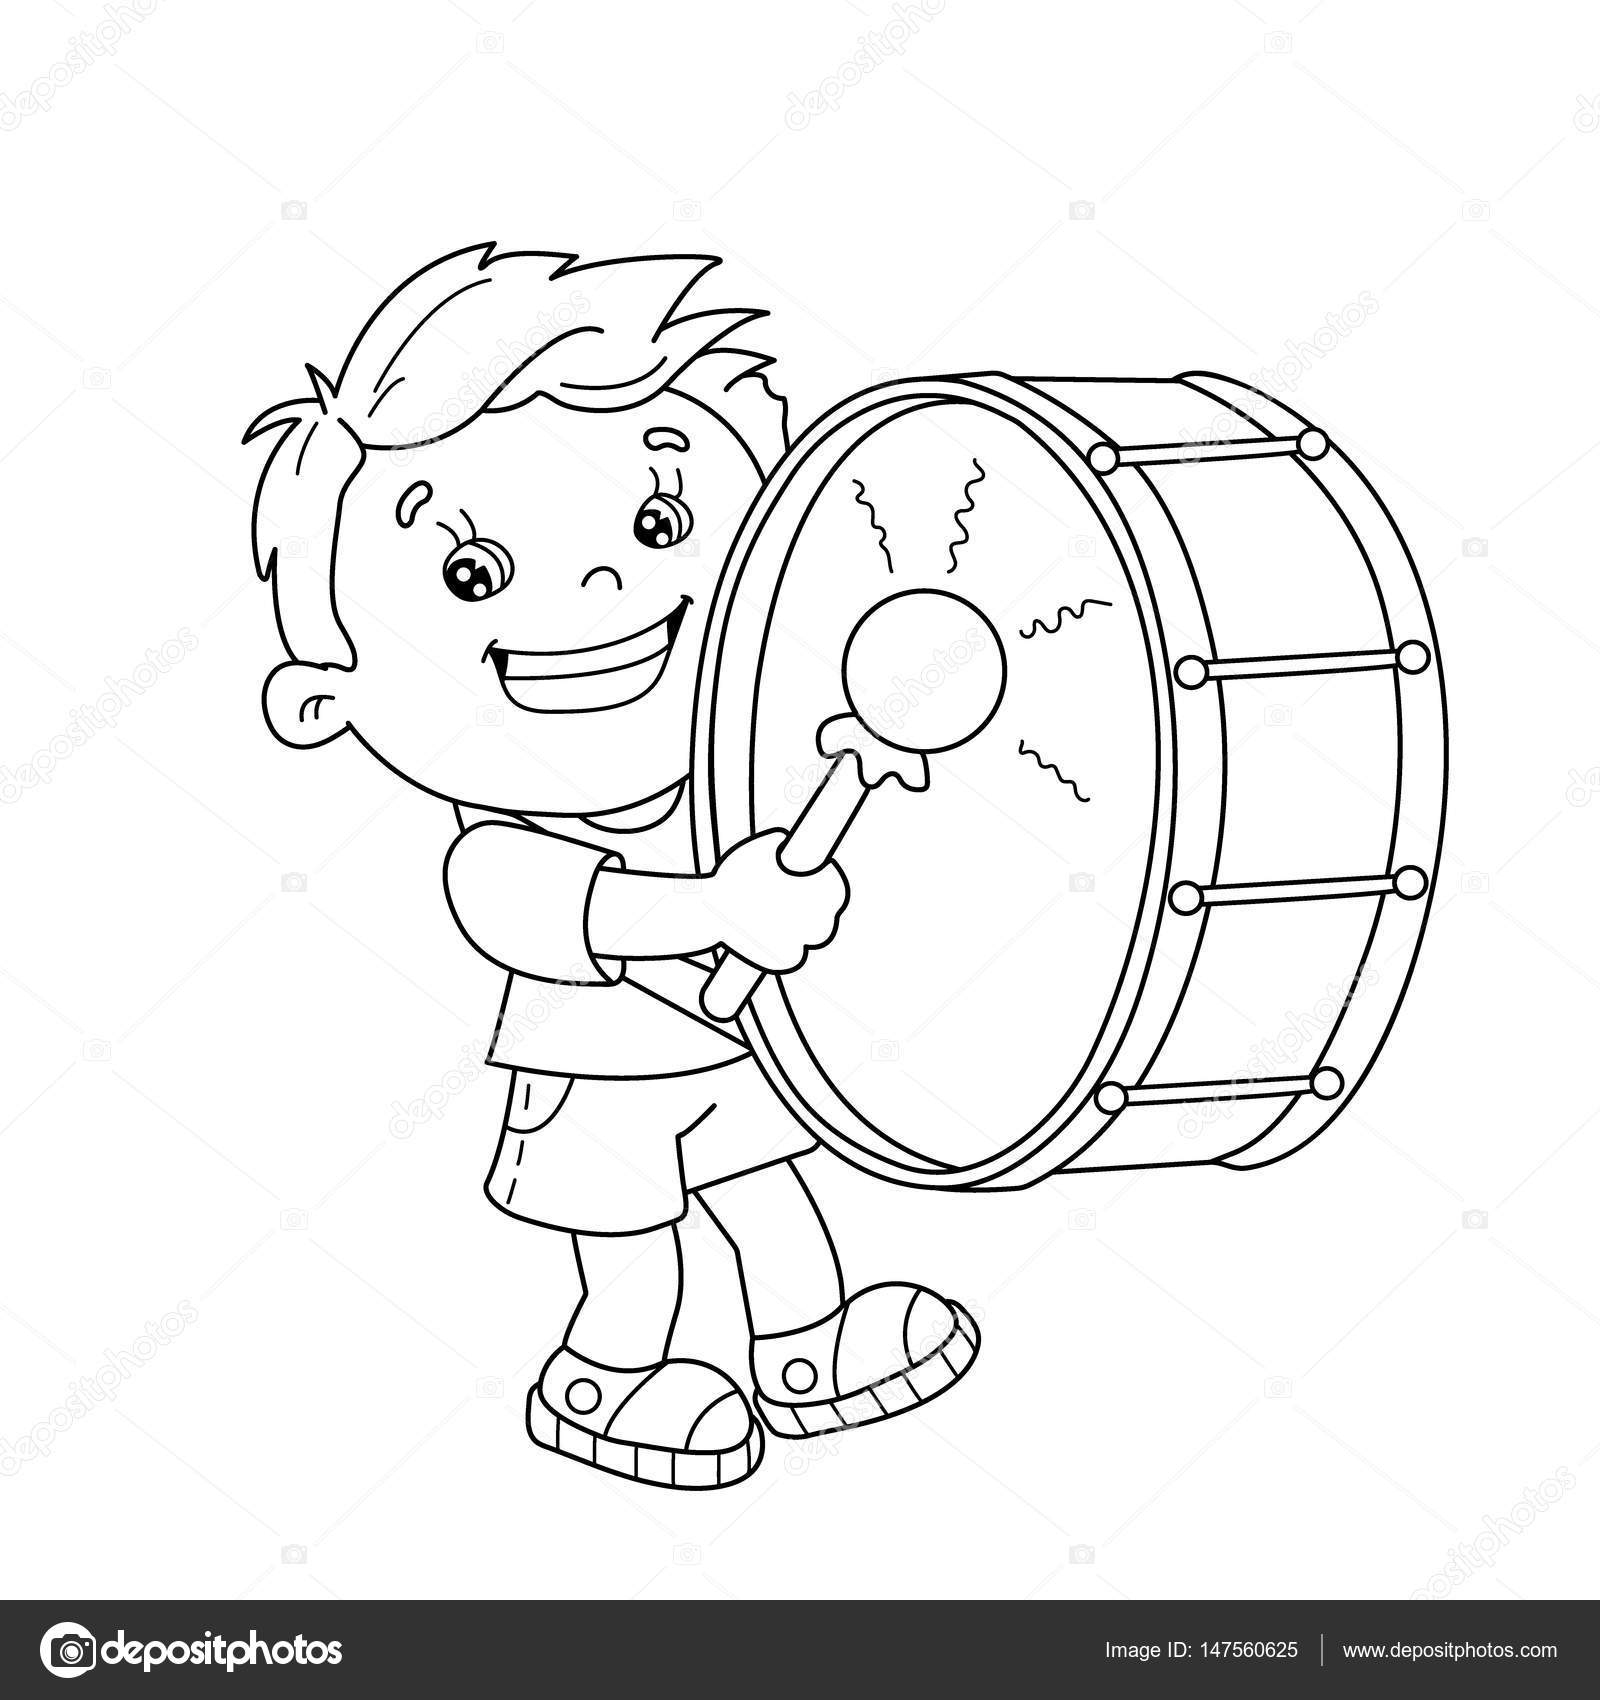 1600x1700 Coloring Page Outline Of Cartoon Boy Playing The Drum. Musical